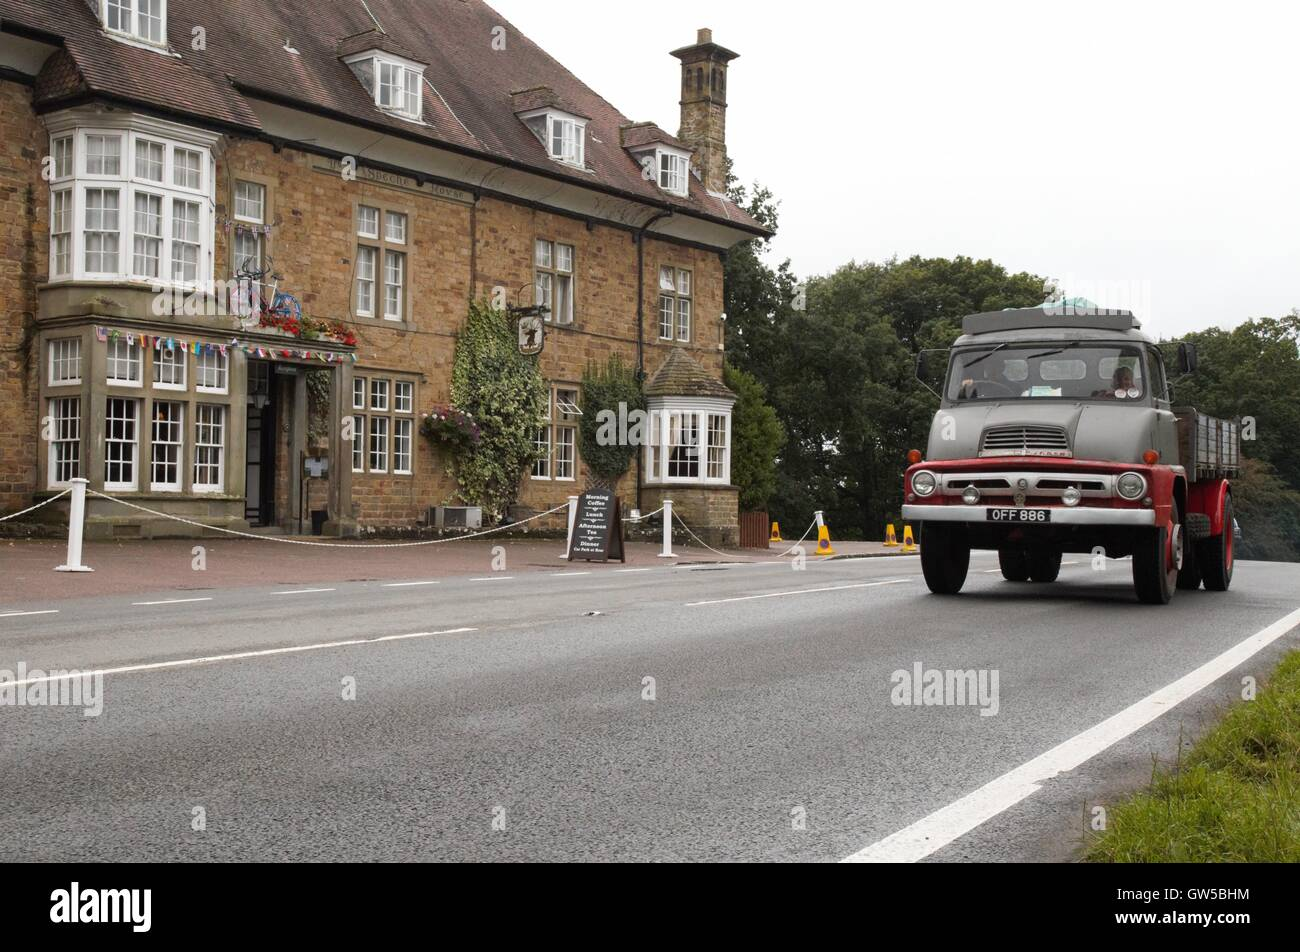 Thames Trader Lorry - Stock Image